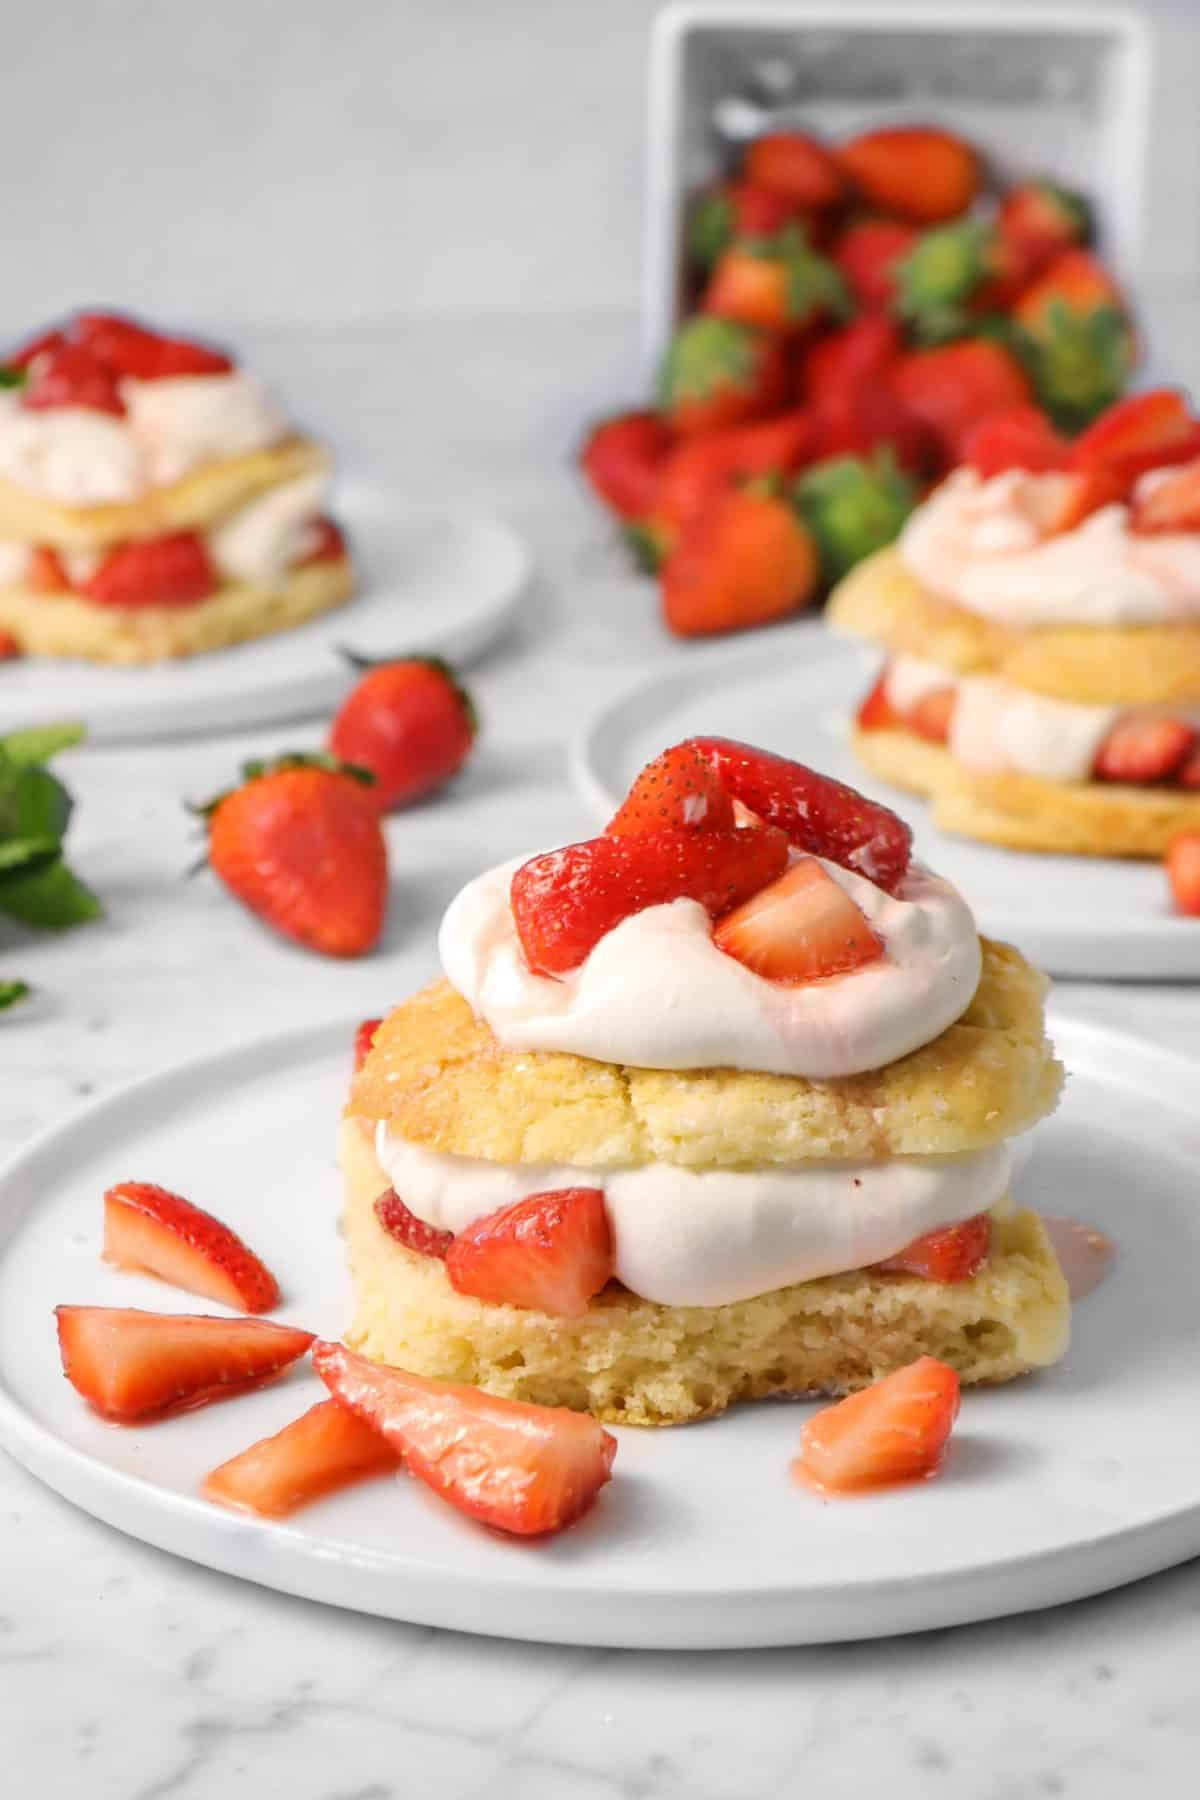 three strawberry shortcakes on a white plate with a white basket of strawberries